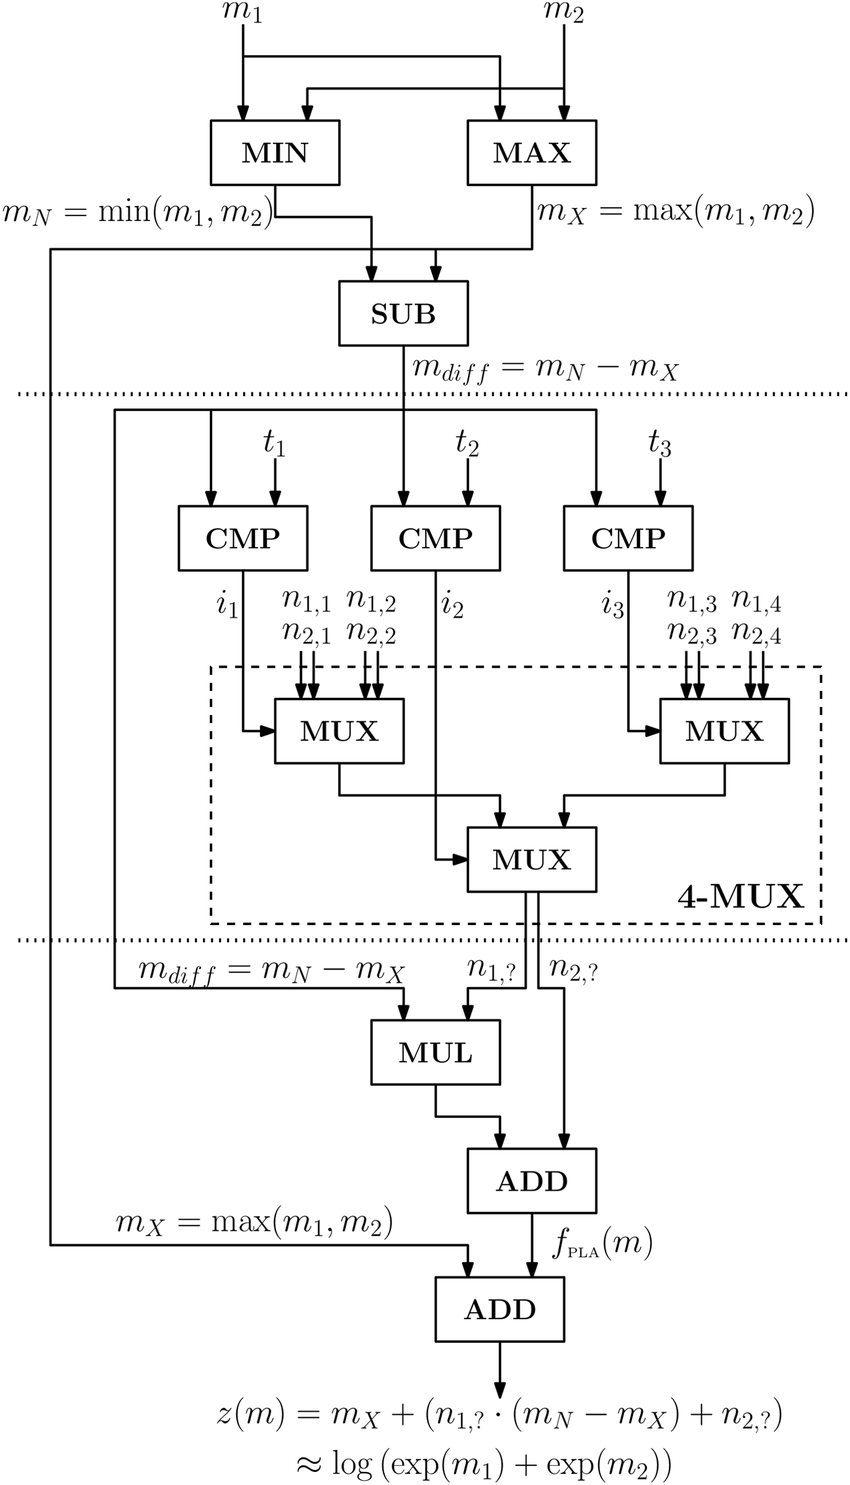 medium resolution of circuit diagram for the logsum operation with n 2 inputs and k 4 look